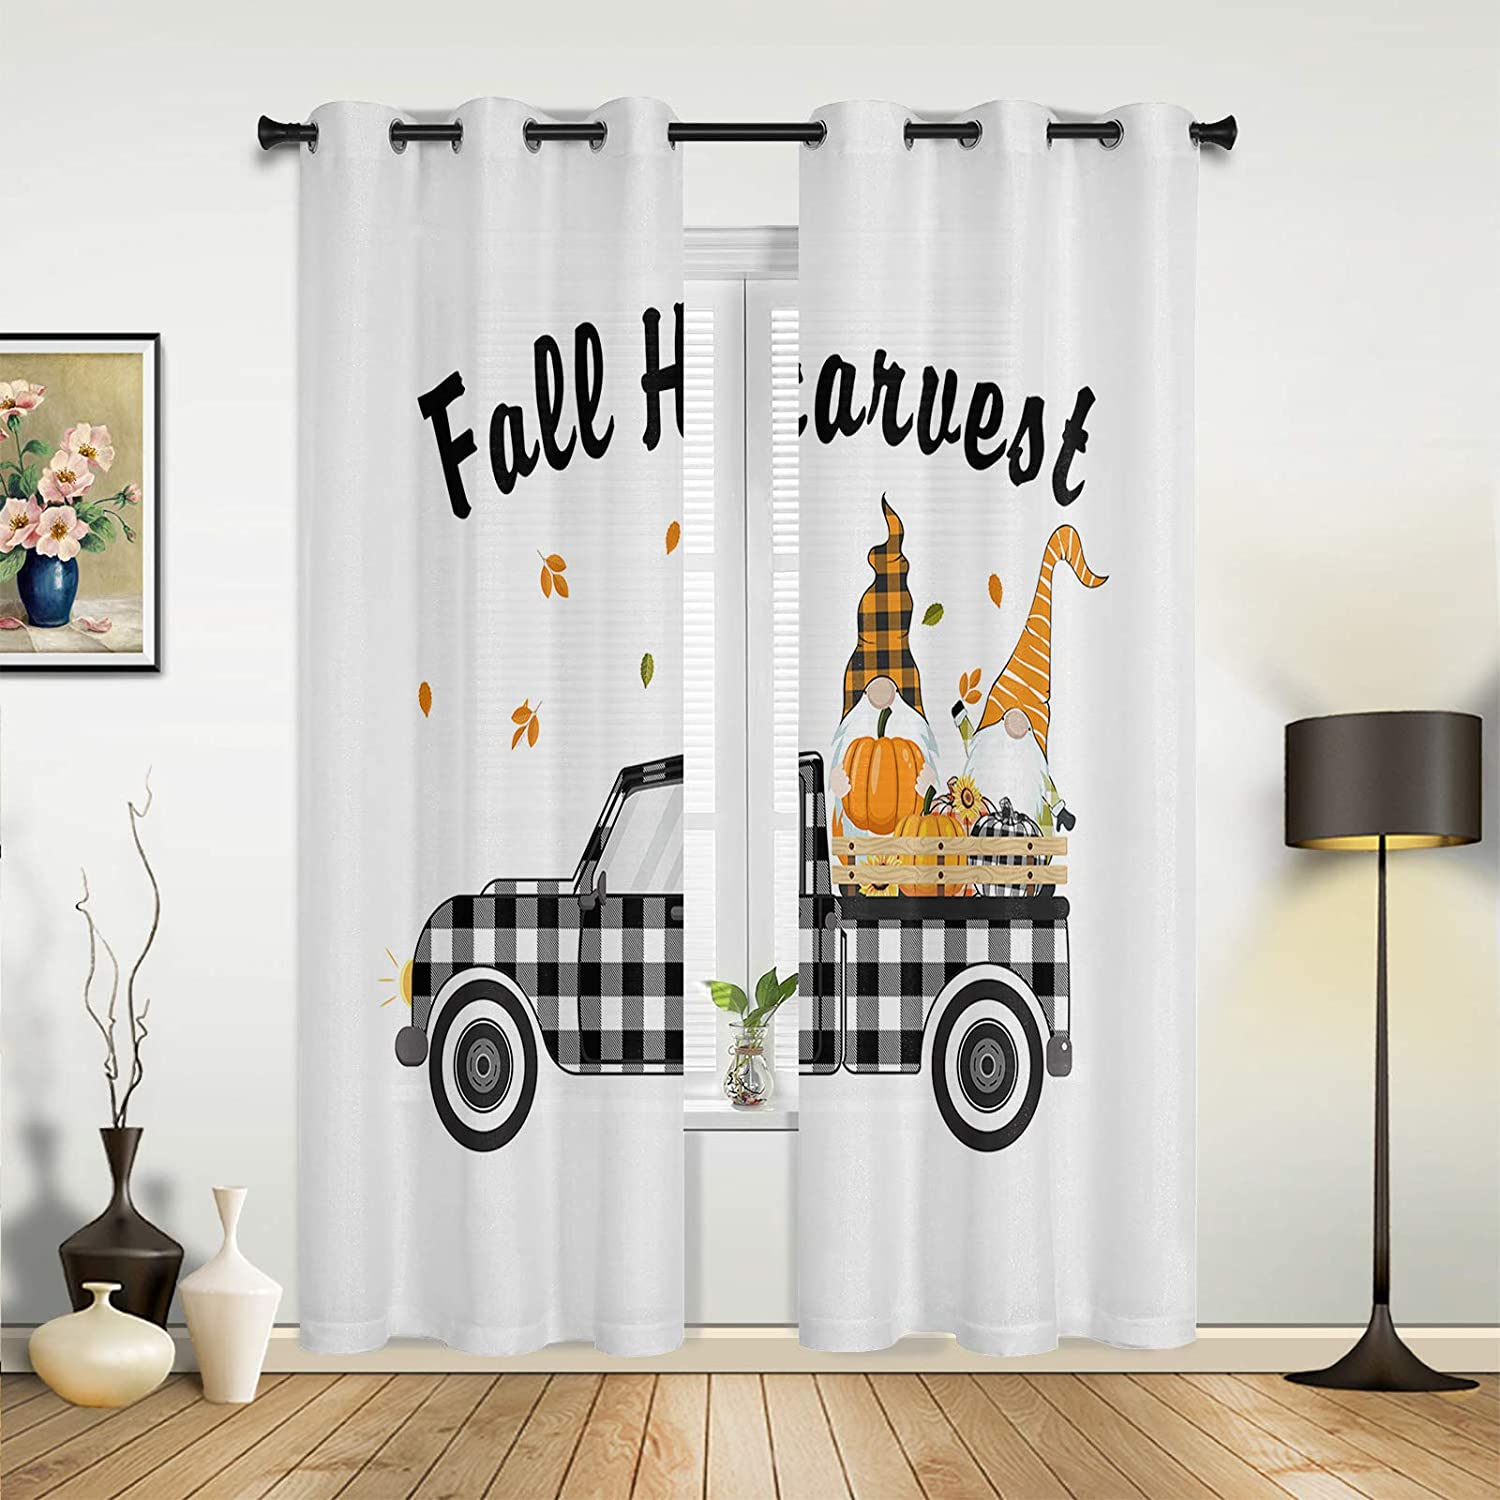 Beauty Decor Window Sheer New York Mall Curtains Bedroom for Austin Mall Living Room Fall